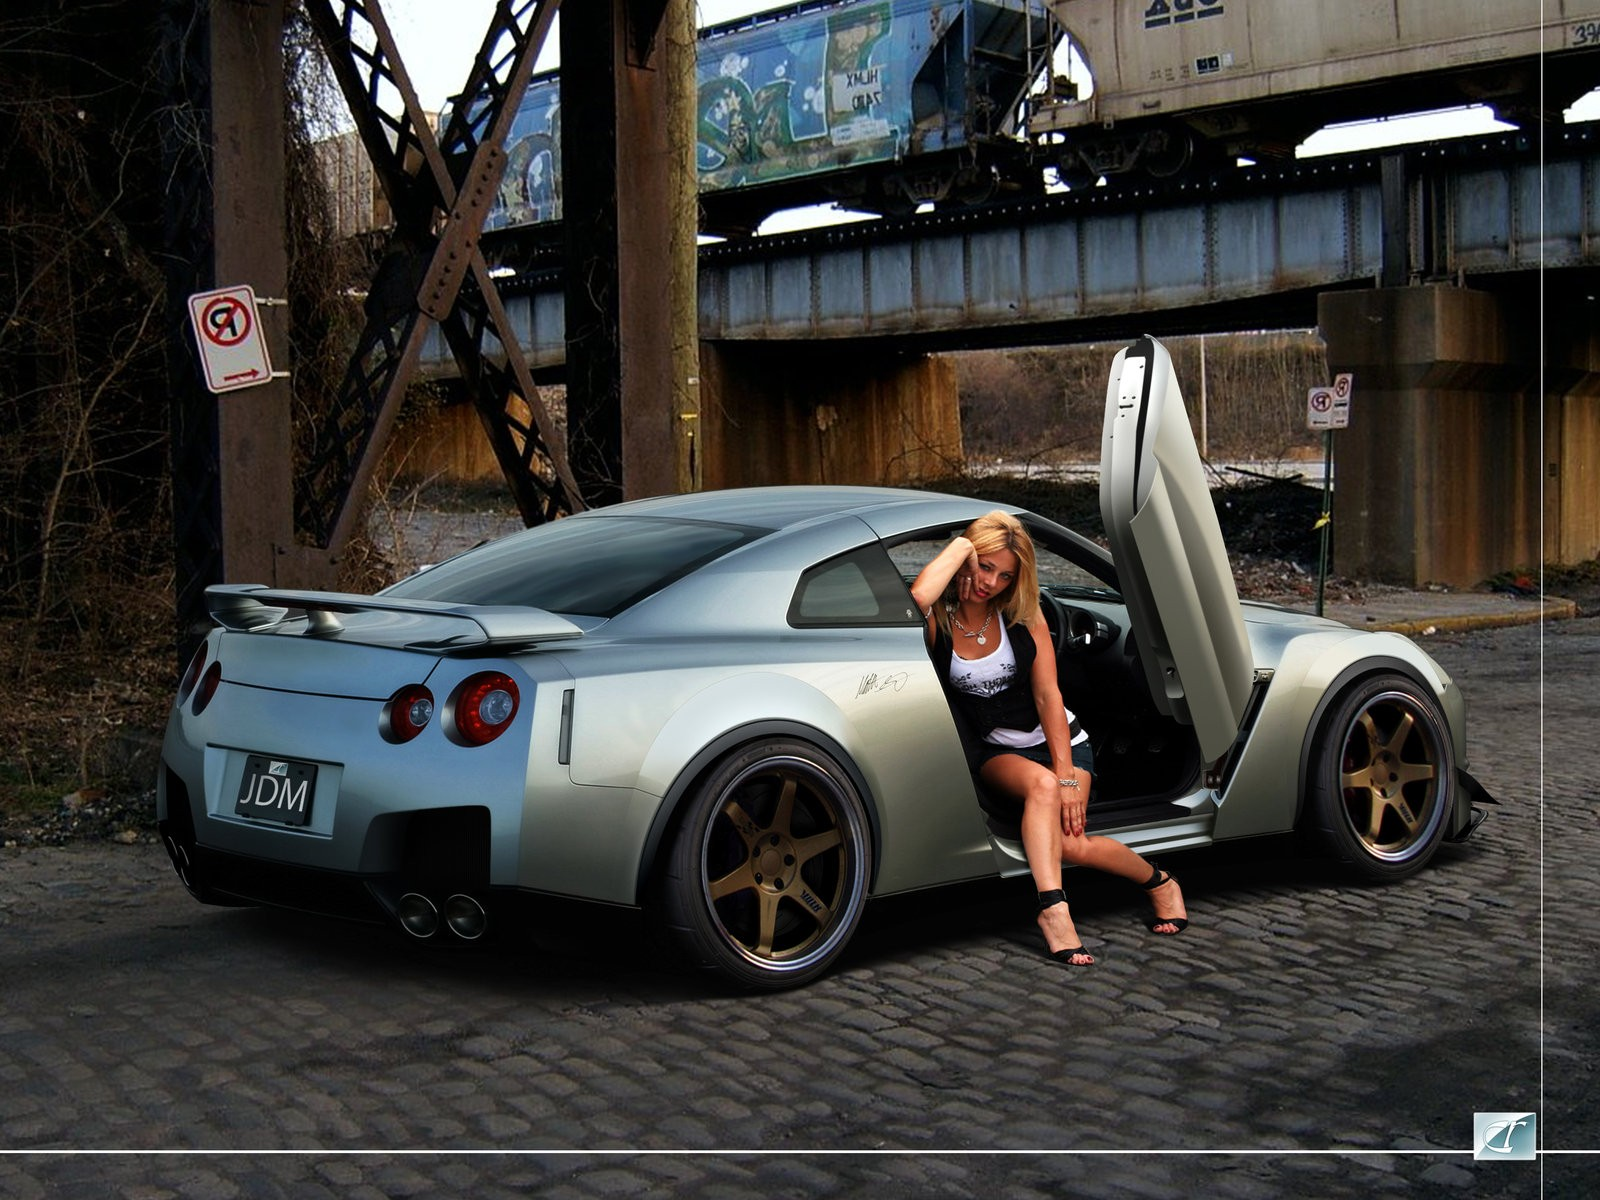 Wallpaper Gtr Nissan Wallpaper Pictures Gallery